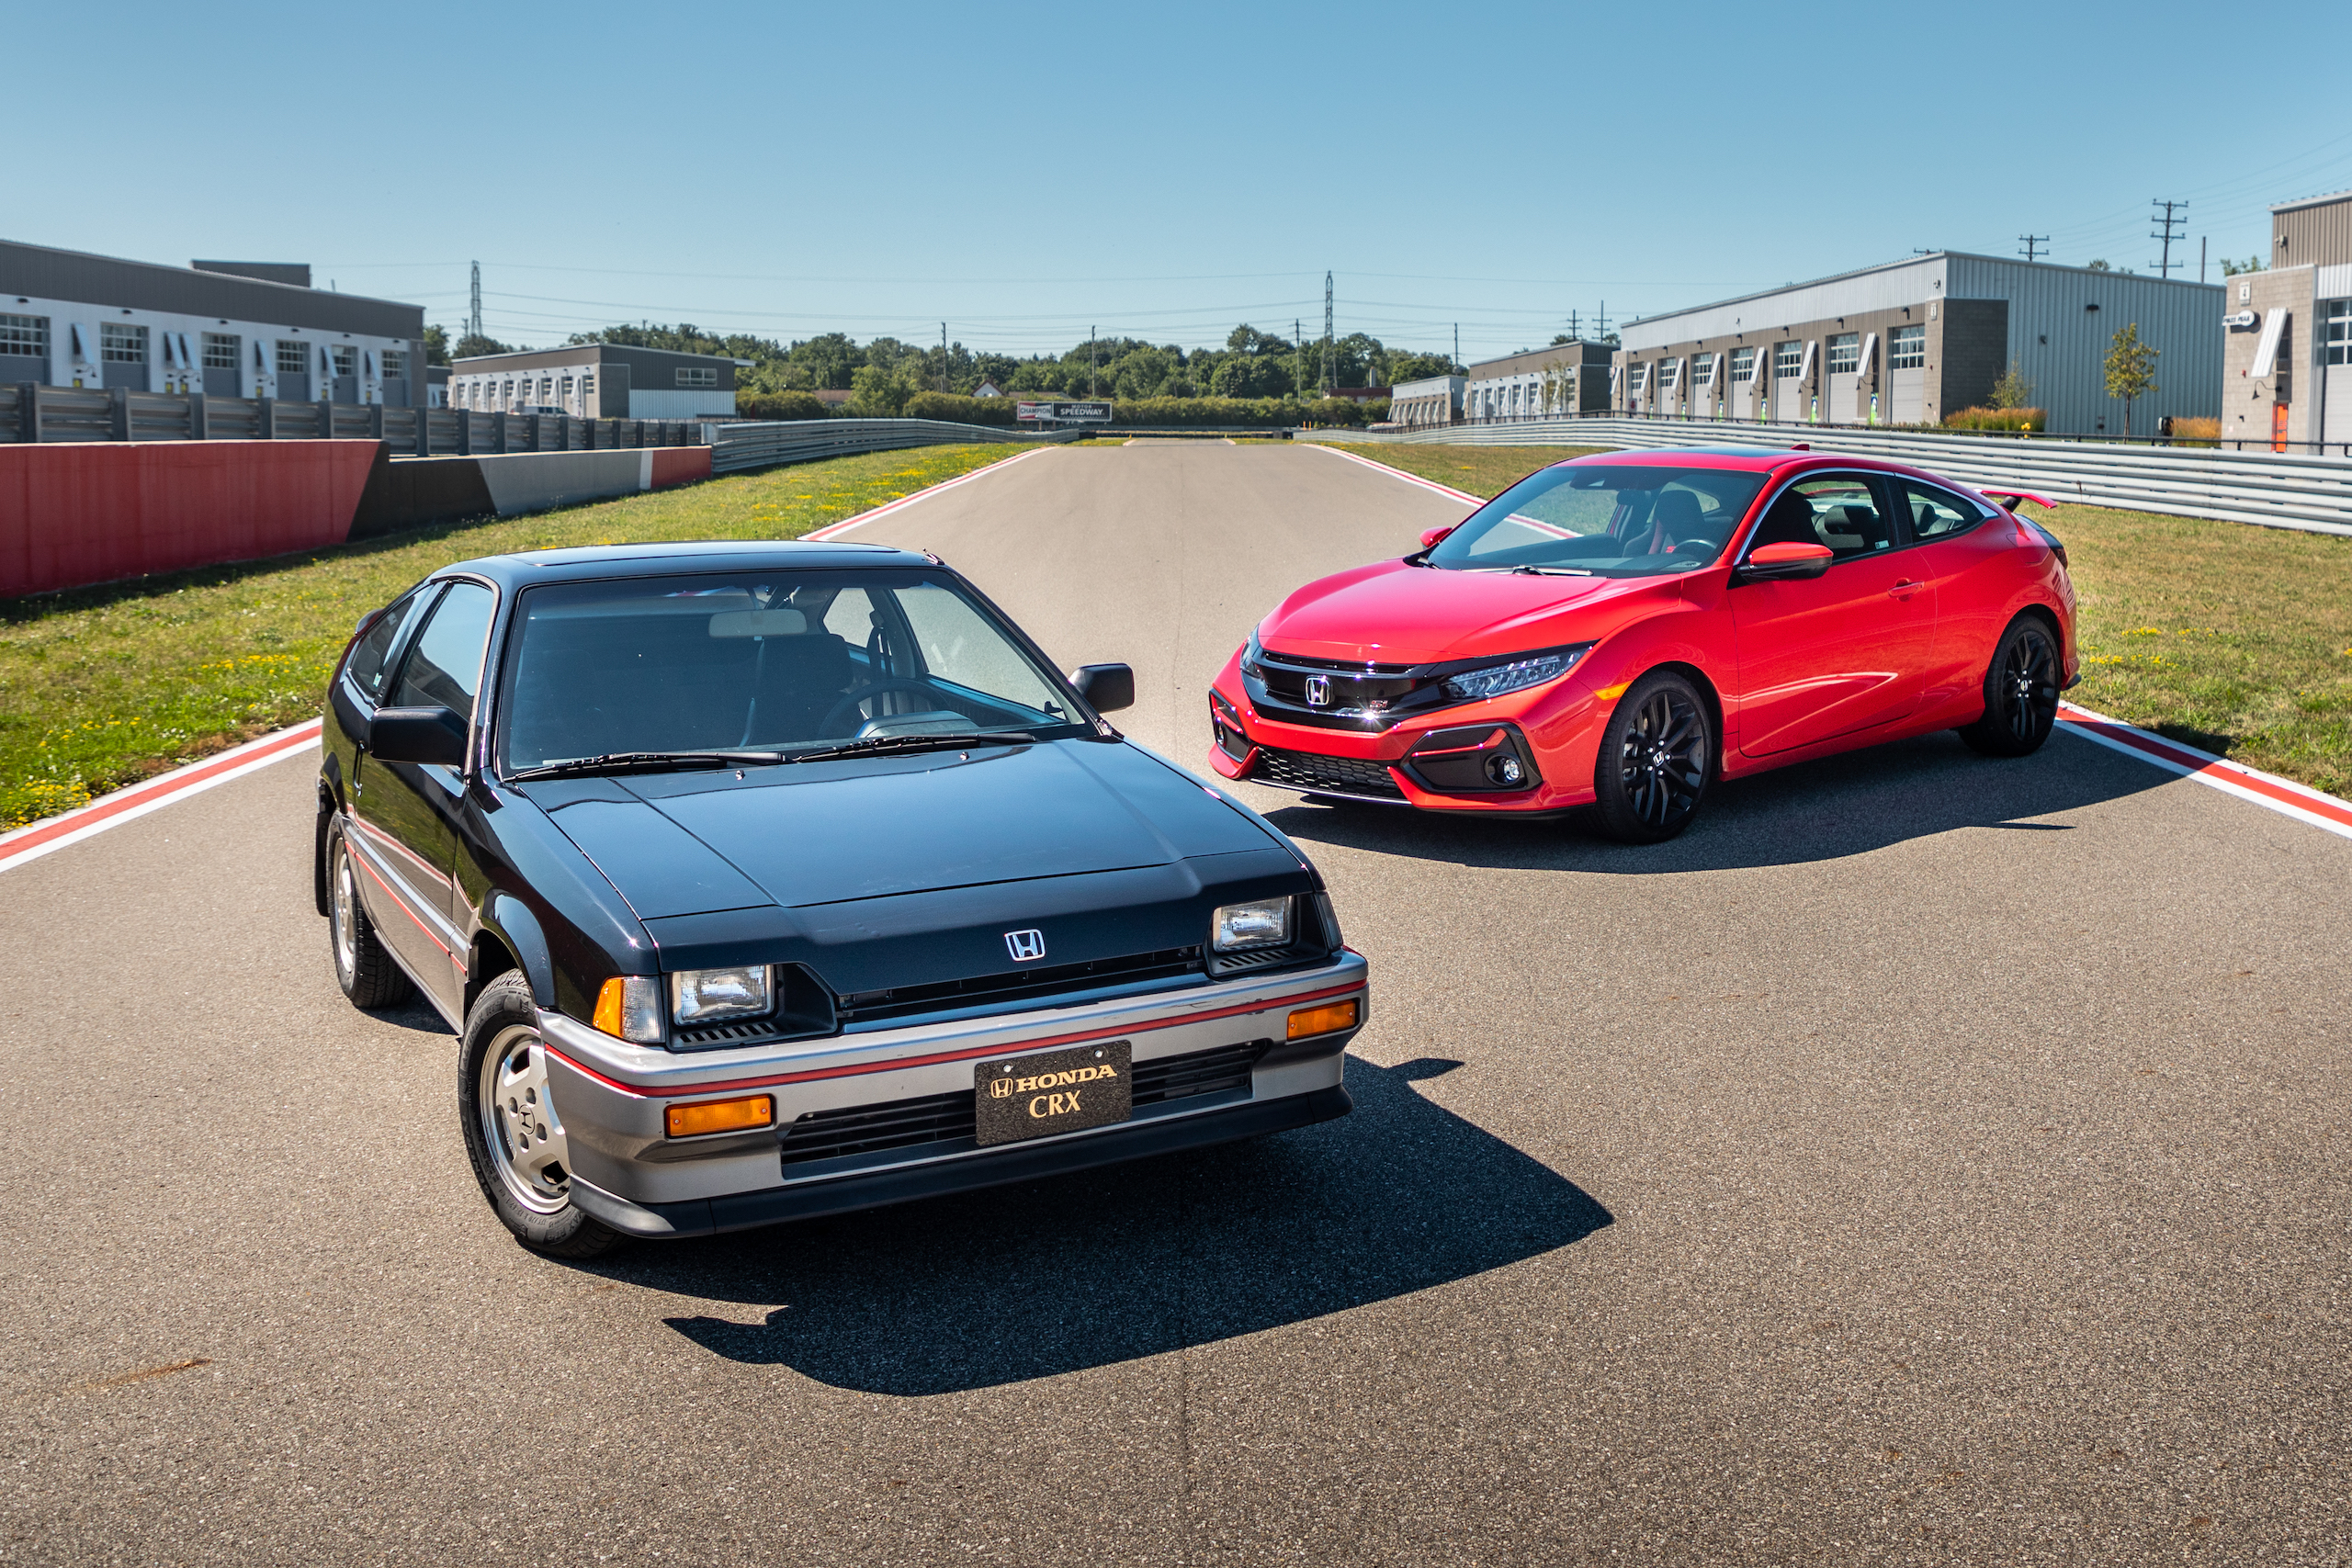 1985 CRX Si and 2020 Civic Si